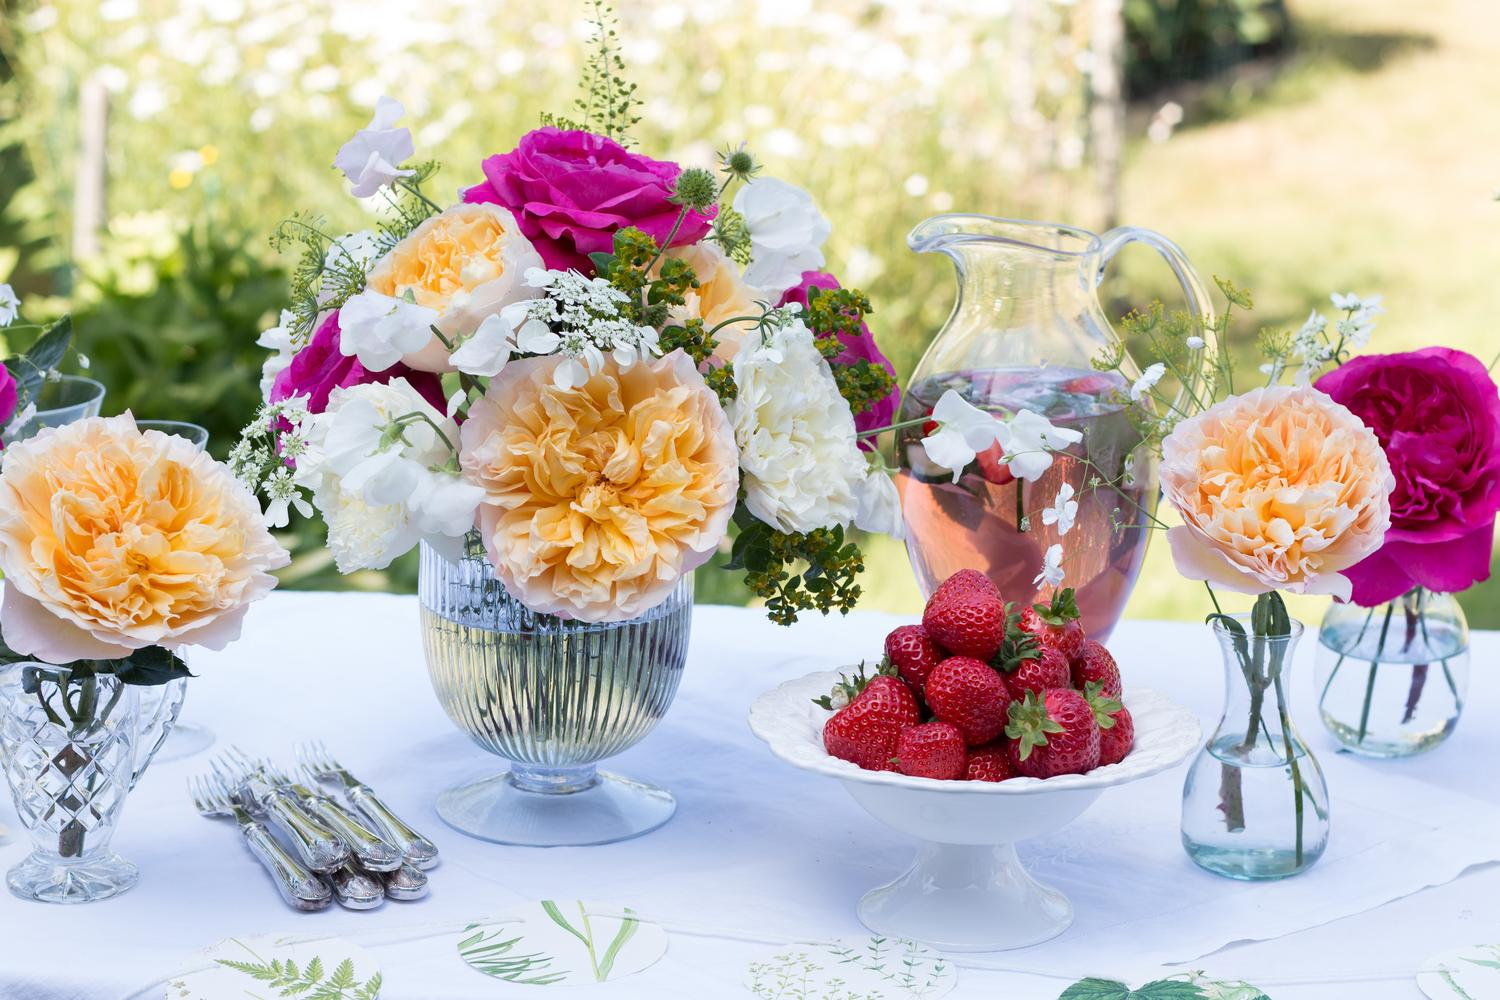 Mixed Roses Floral Arrangement for Outdoor Celebrations